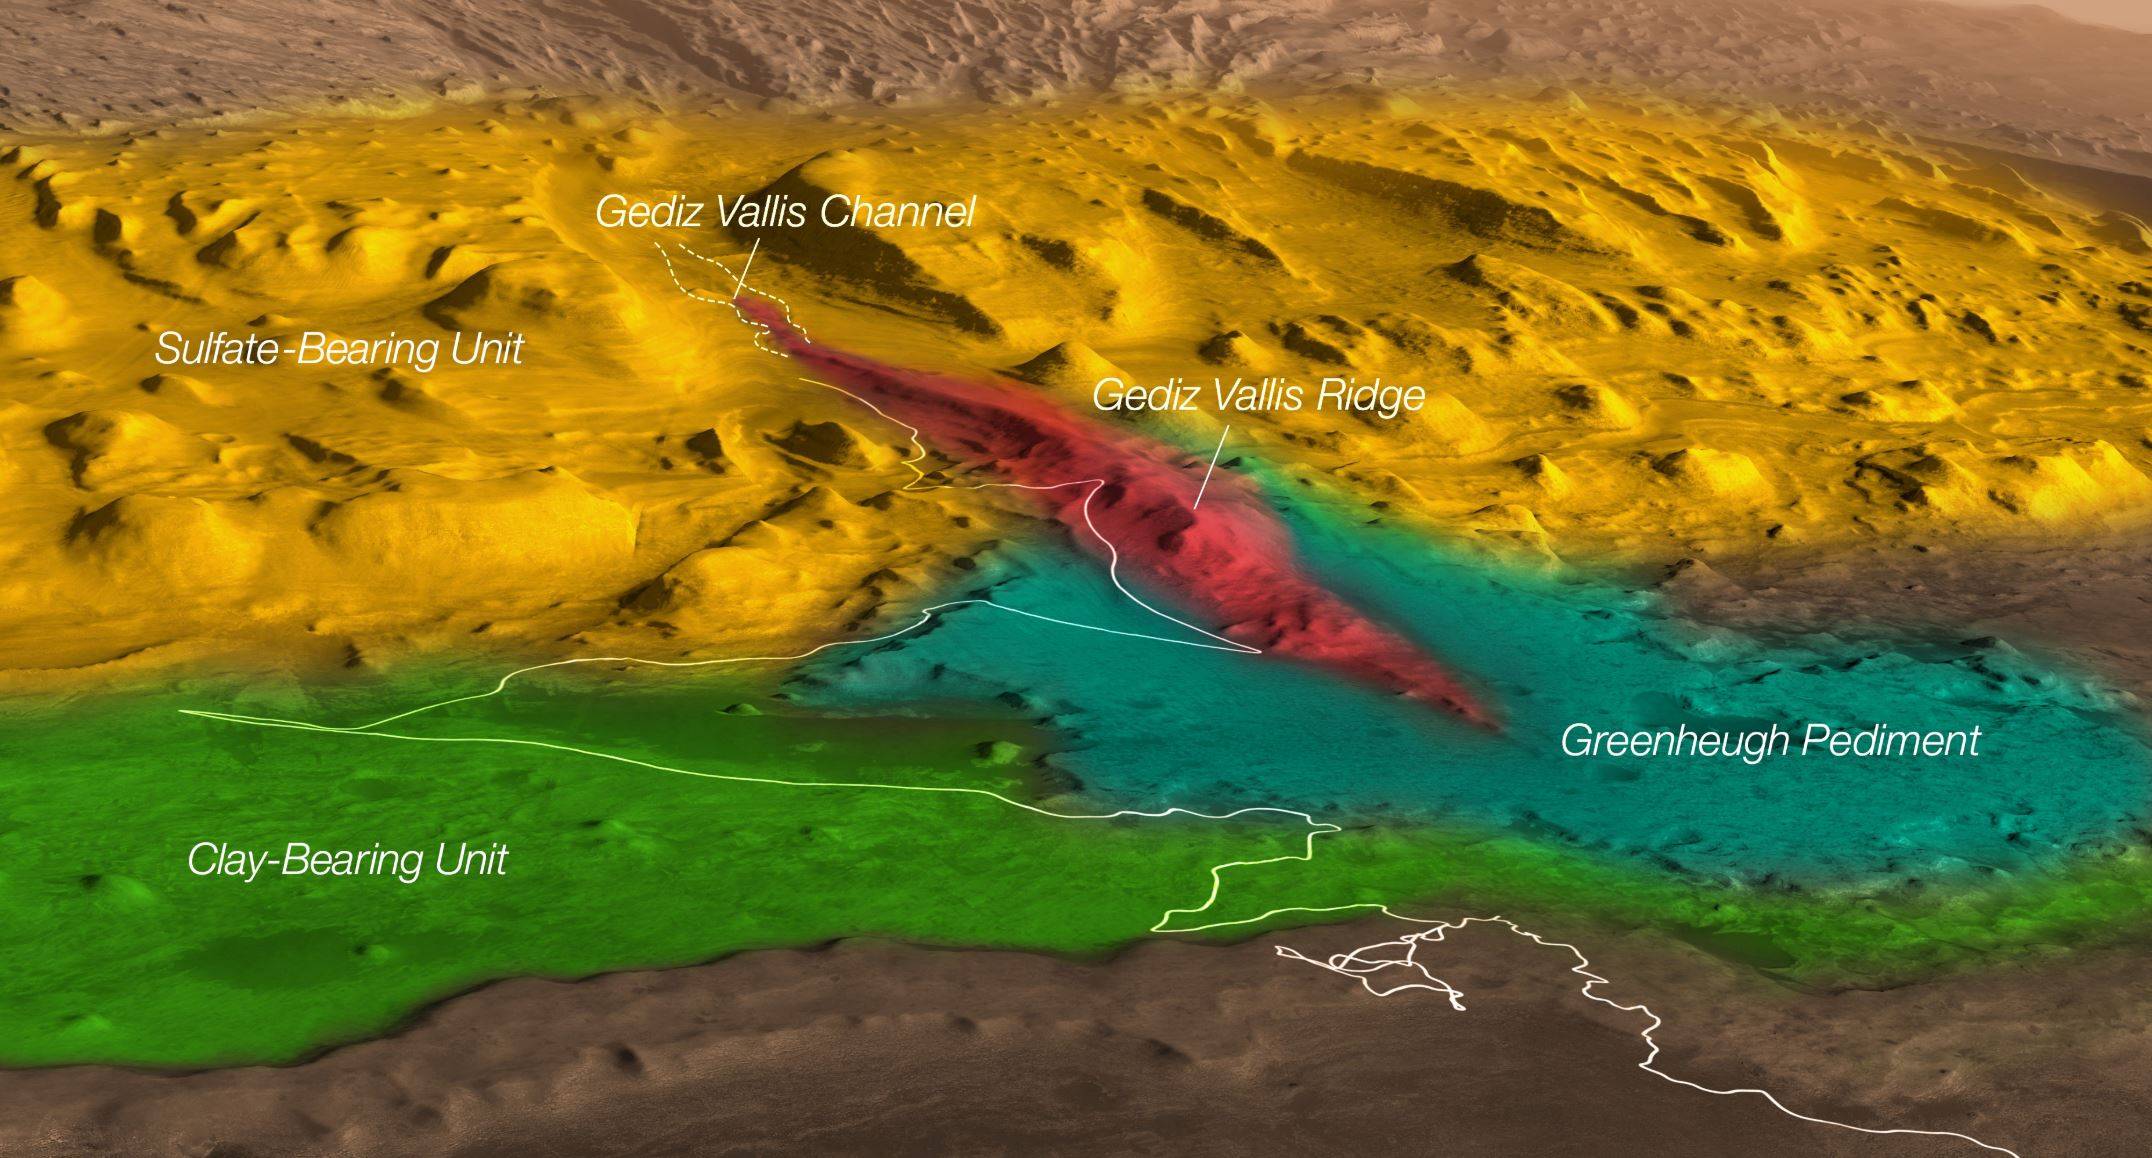 A coloured, annotated map of Mt. Sharp and a proposed route through the different regions scientists would like to explore with MSL Curiosity. Currently, the rover is exploring the Clay-Bearing Unit. The goal is to explore all these regions to learn about how Mars dried up over time, and how that may have affected its ability to support life. - Image Credit: NASA/JPL-Caltech/ESA/Univ. of Arizona/JHUAPL/MSSS/USGS Astrogeology Science Center